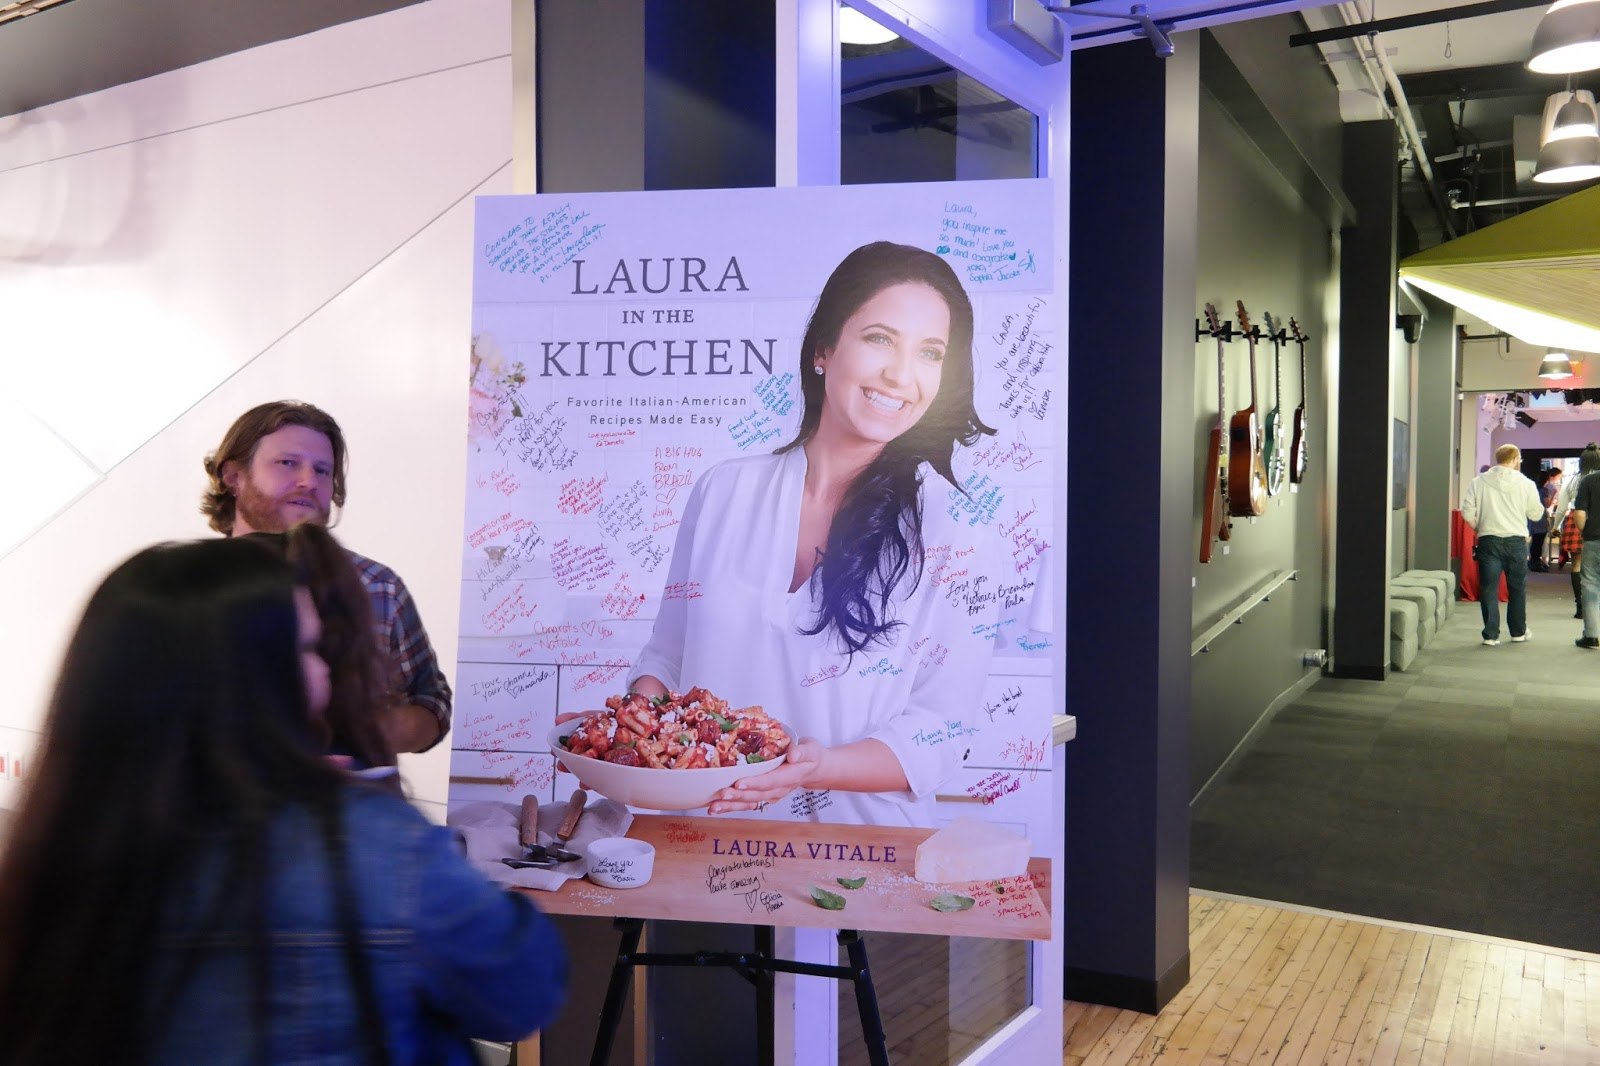 LAPIS DARLING: Laura Vitale Book Launch! | Laura in the Kitchen